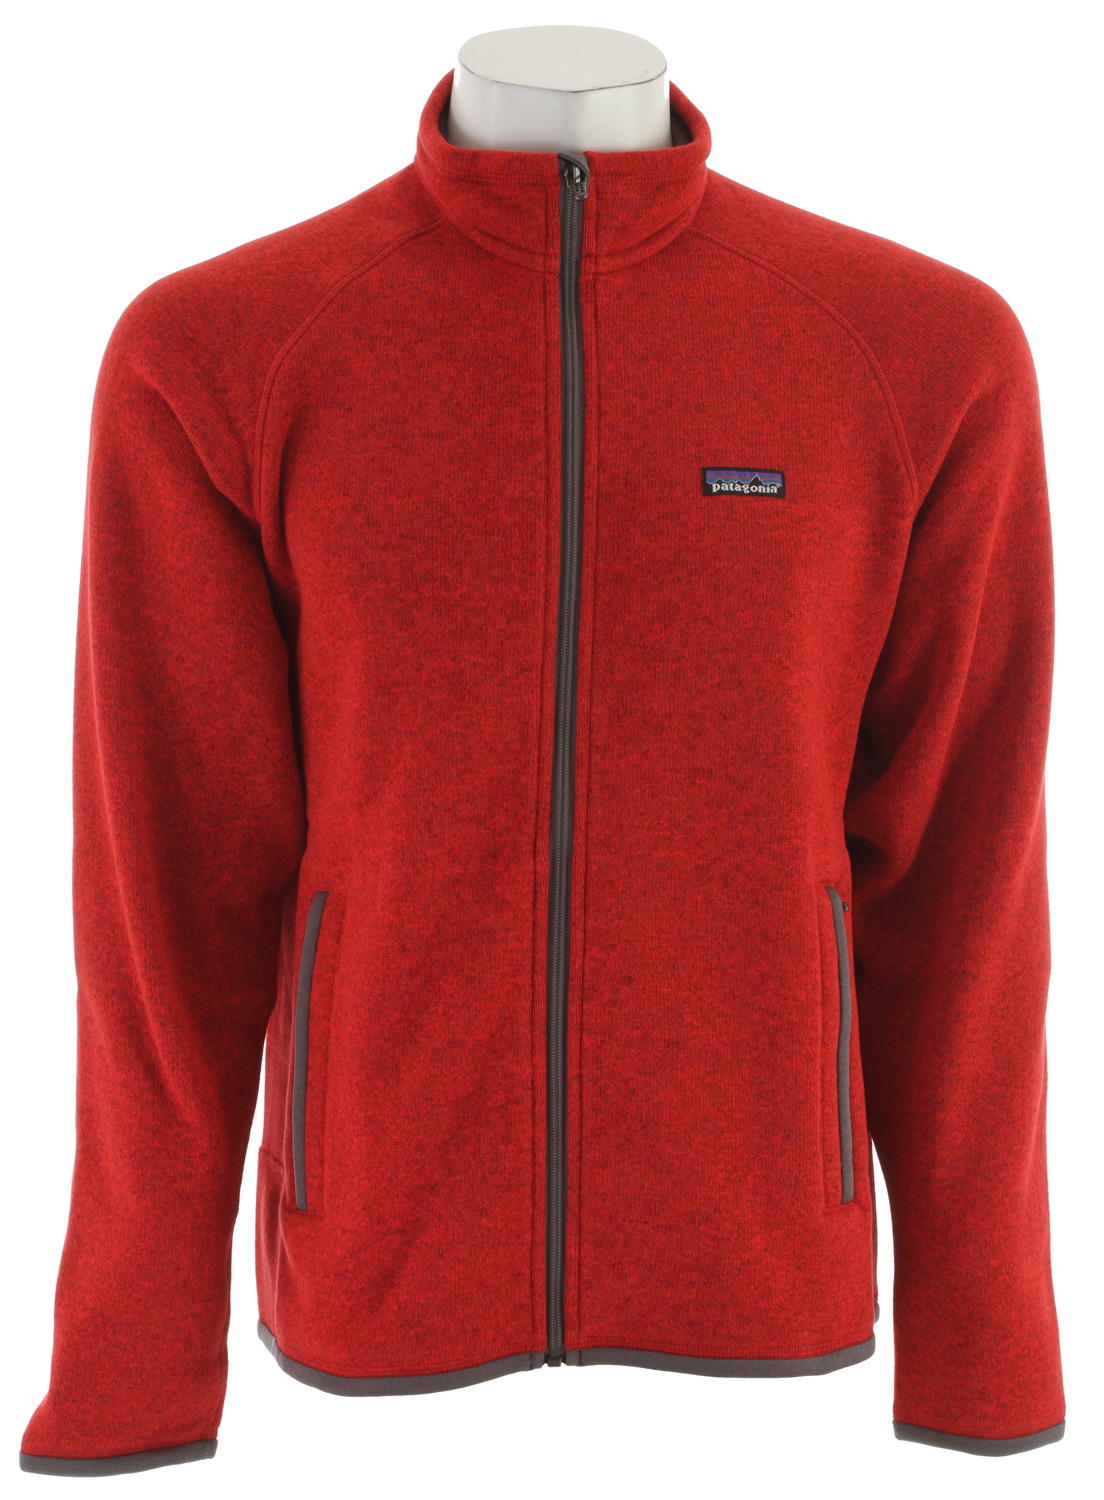 Fitness A soft, full-zip polyester fleece jacket that has a sweater-knit face and a warm fleece interior. fabric: 9.5-oz 100% polyester with a sweater-knit exterior and fleece interiorKey Features of the Patagonia Better Sweater Jacket Fleece: Fabric has a sweater-knit face, fleece interior and heathered yarns Full-zip jacket with zip-through, stand-up collar and zipper garage Raglan sleeves for pack-wearing comfort Two zippered handwarmer pockets Micropolyester jersey trim on cuffs, hem and back of neck Can be worn with layers as outerwear or as a midlayer under a shell Hip length - $129.95